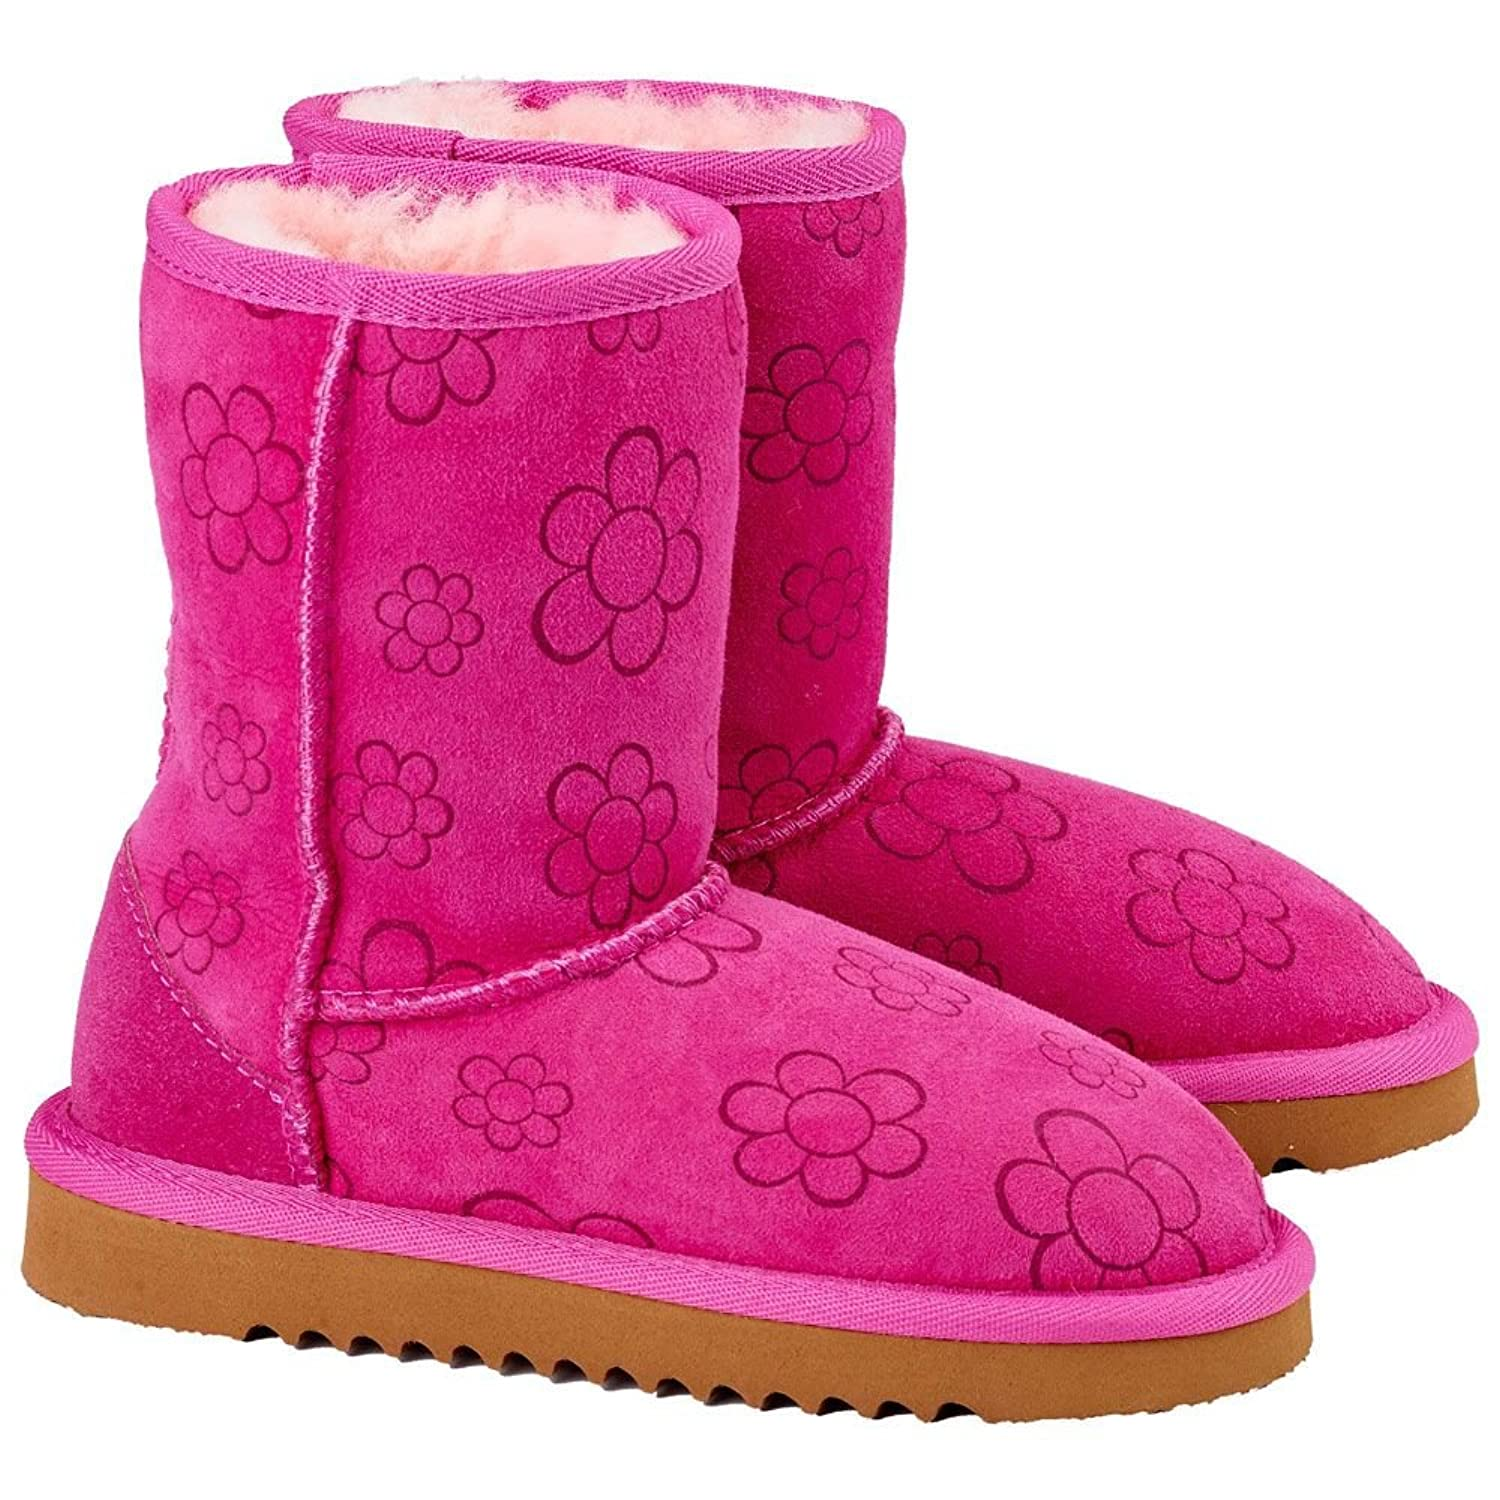 Kirkland Girls Womens Shearling 100% Sheepskin Boots Pink Flower Print  Design Junior Sizes (UK 3 Junior): Amazon.co.uk: Shoes & Bags